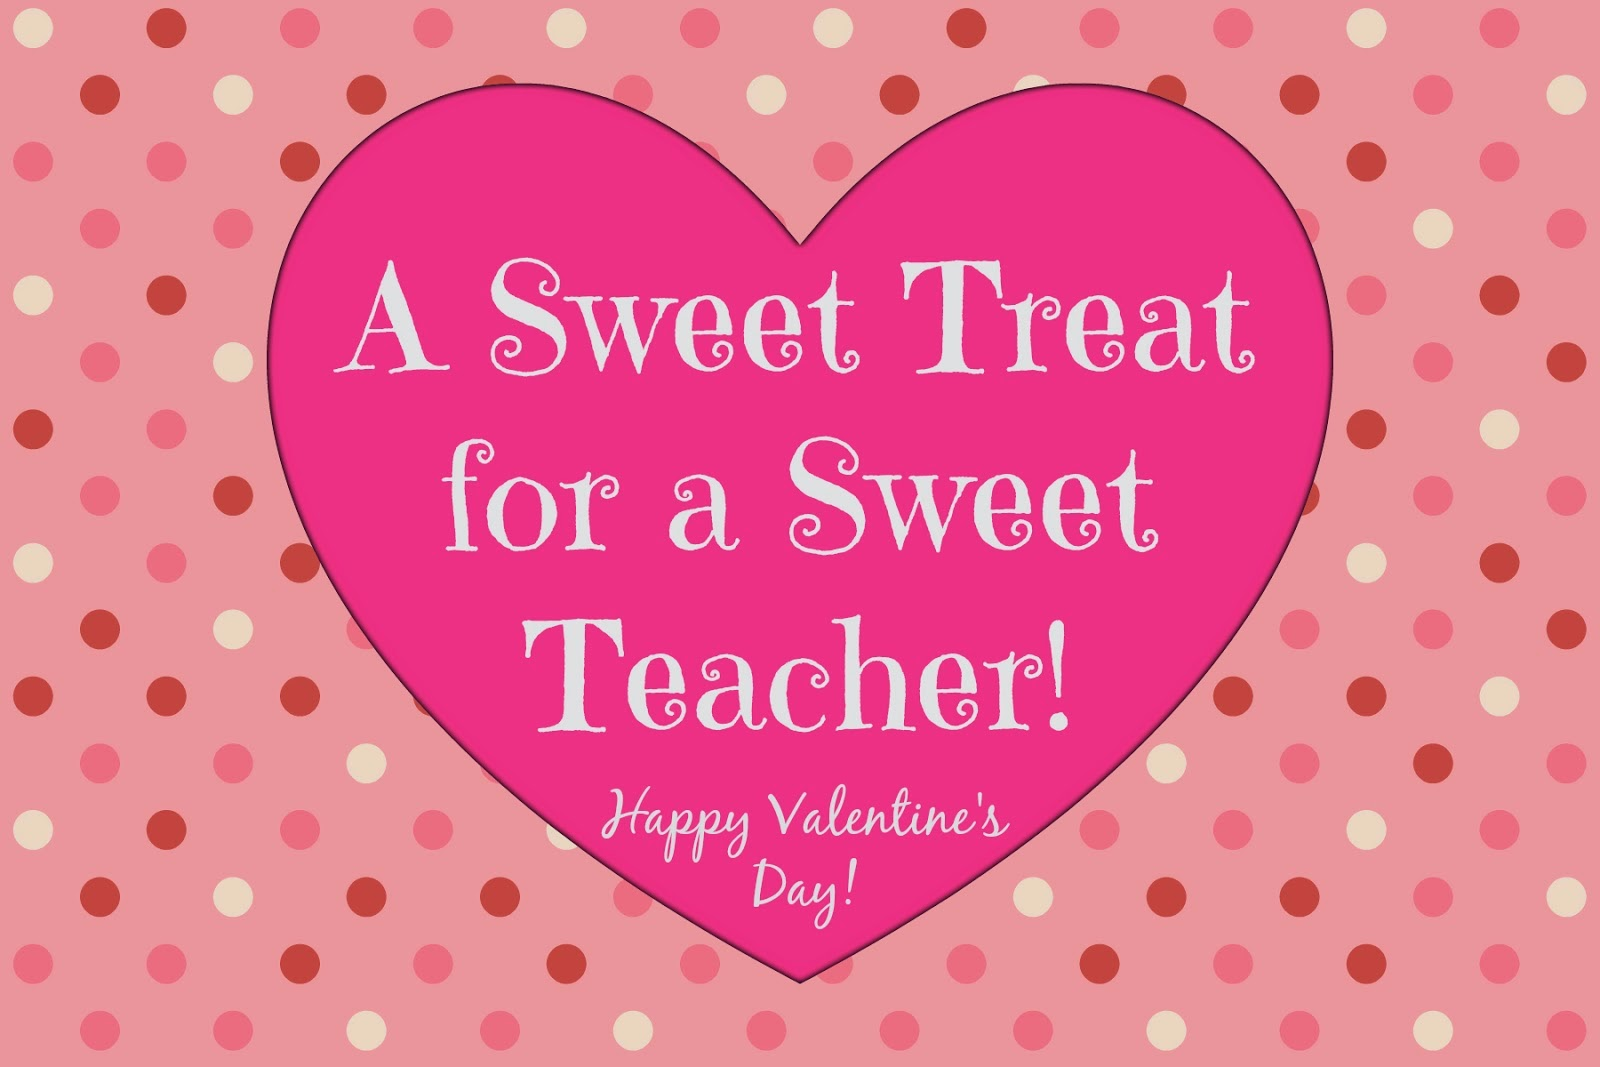 valentines day memes for teachers - East Coast Mommy February 2015